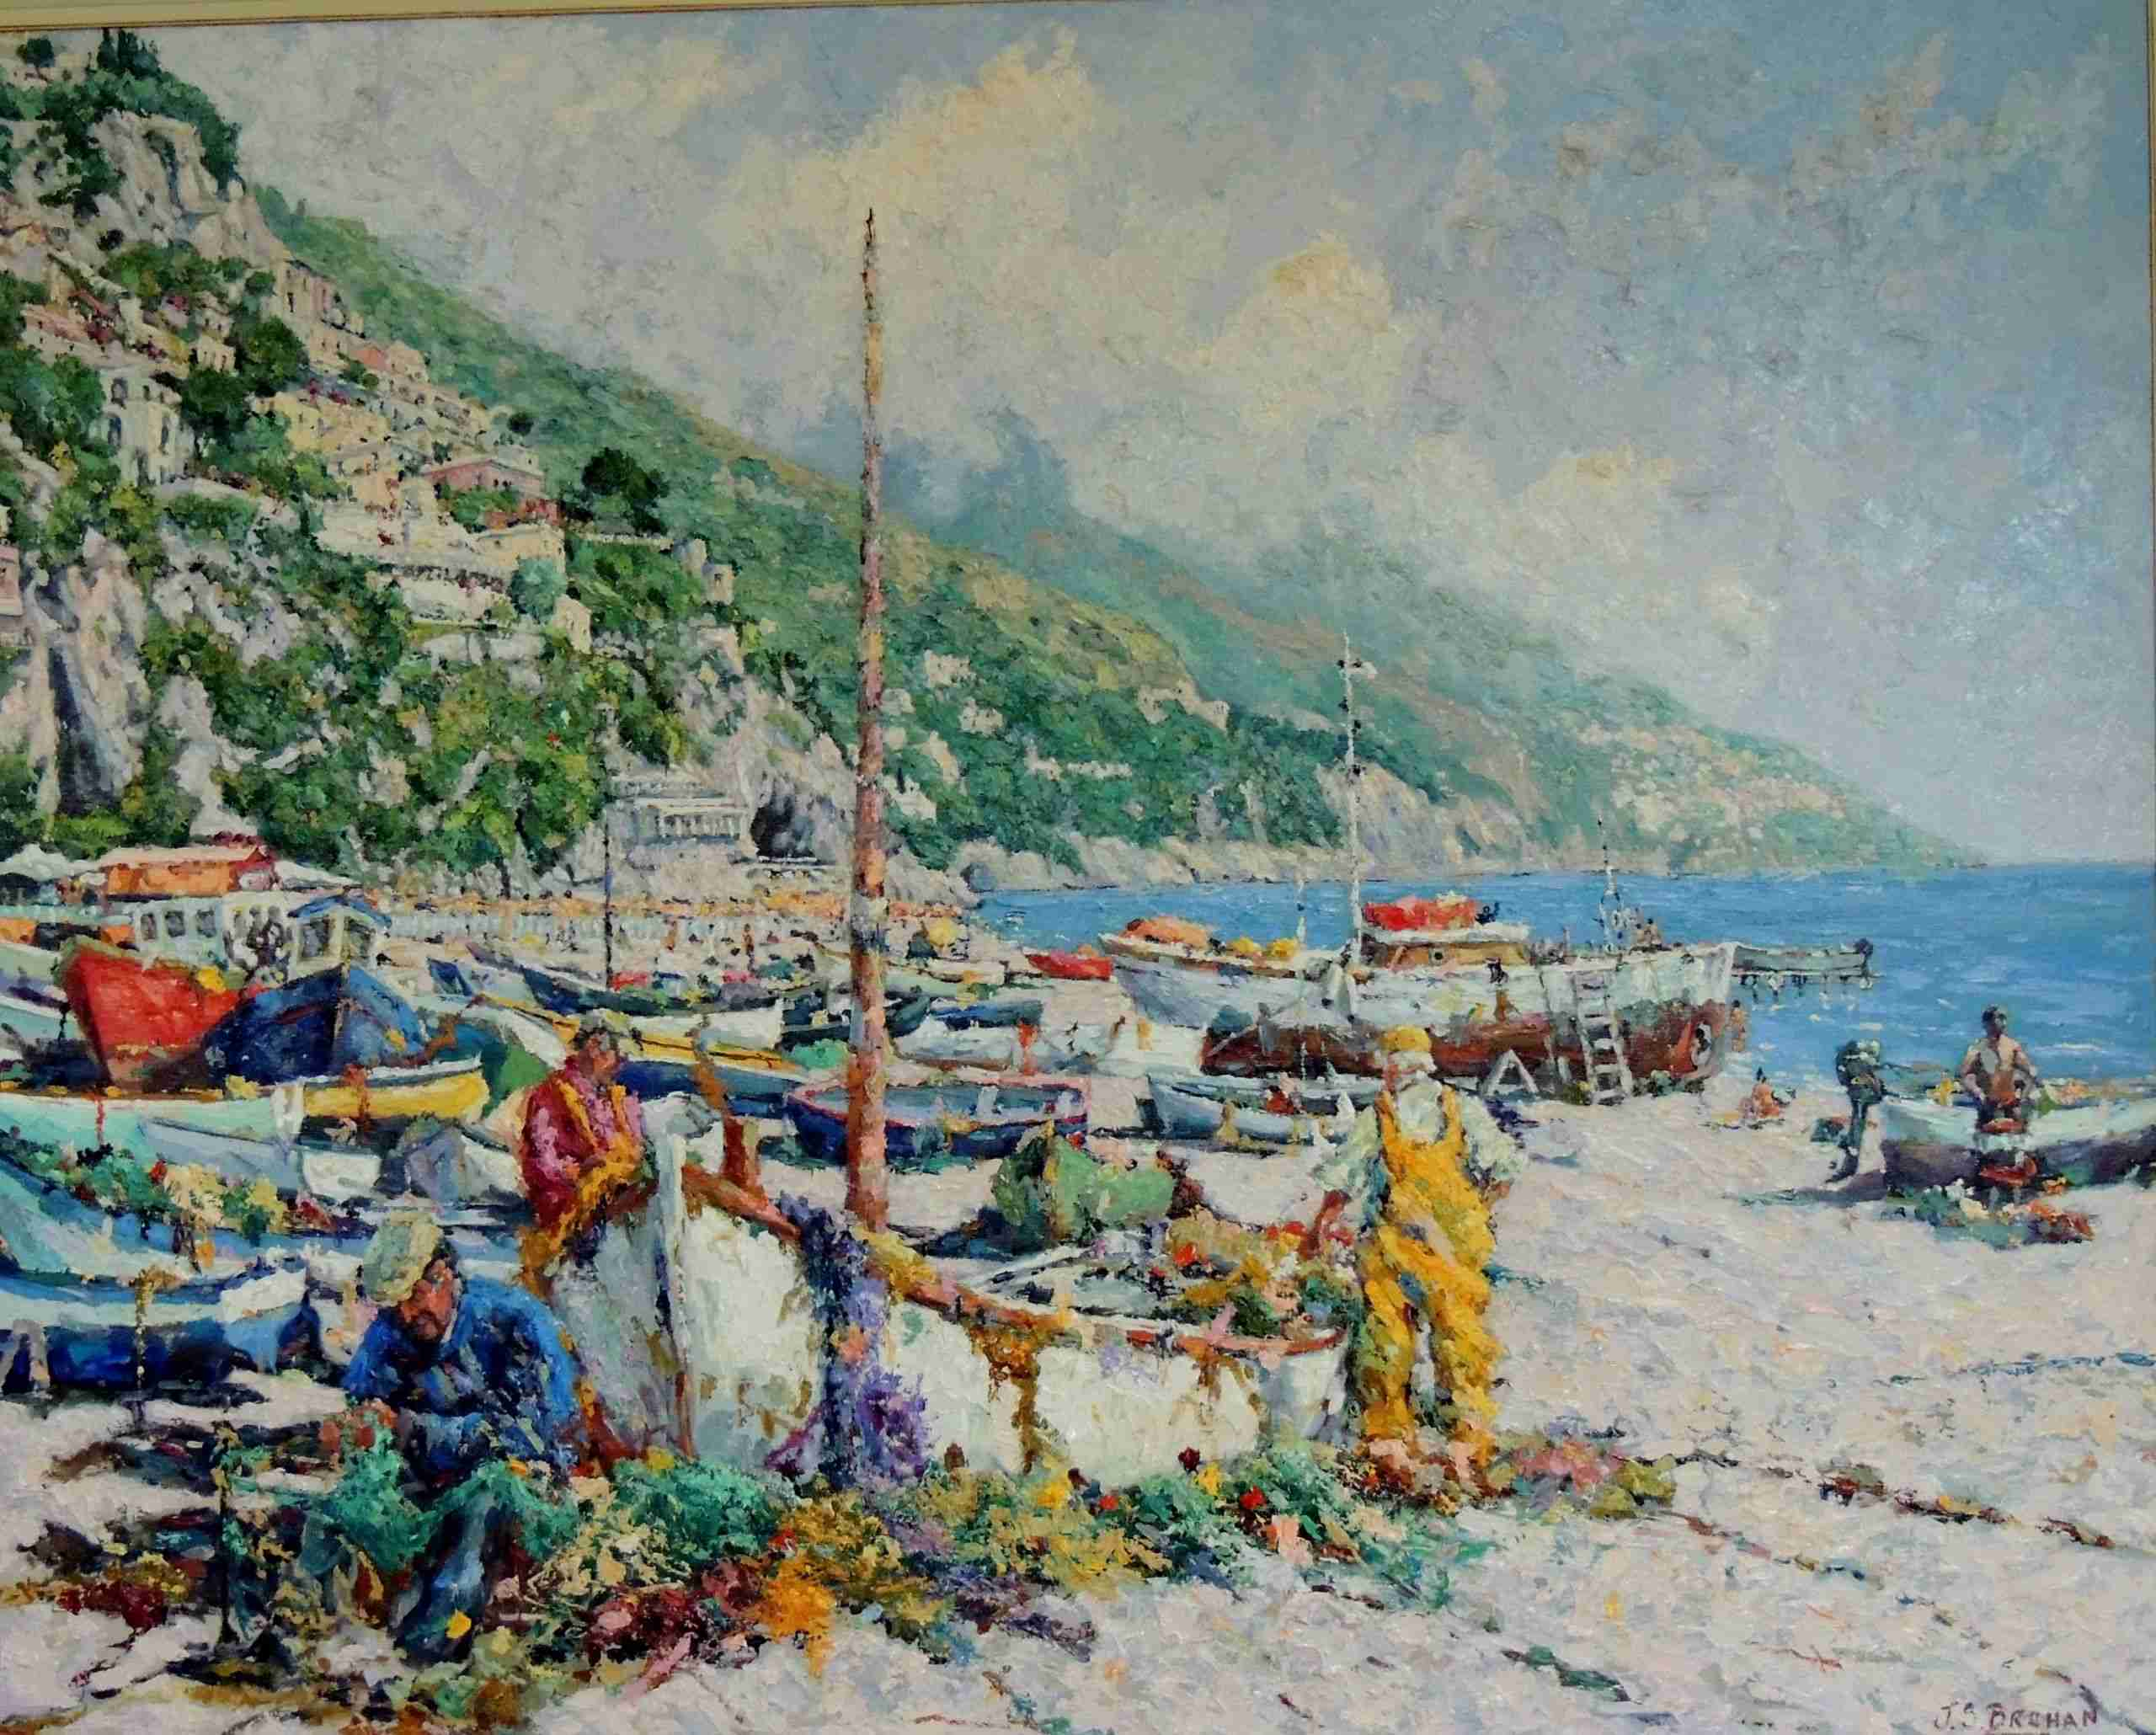 painting of a small habour with sandy ground